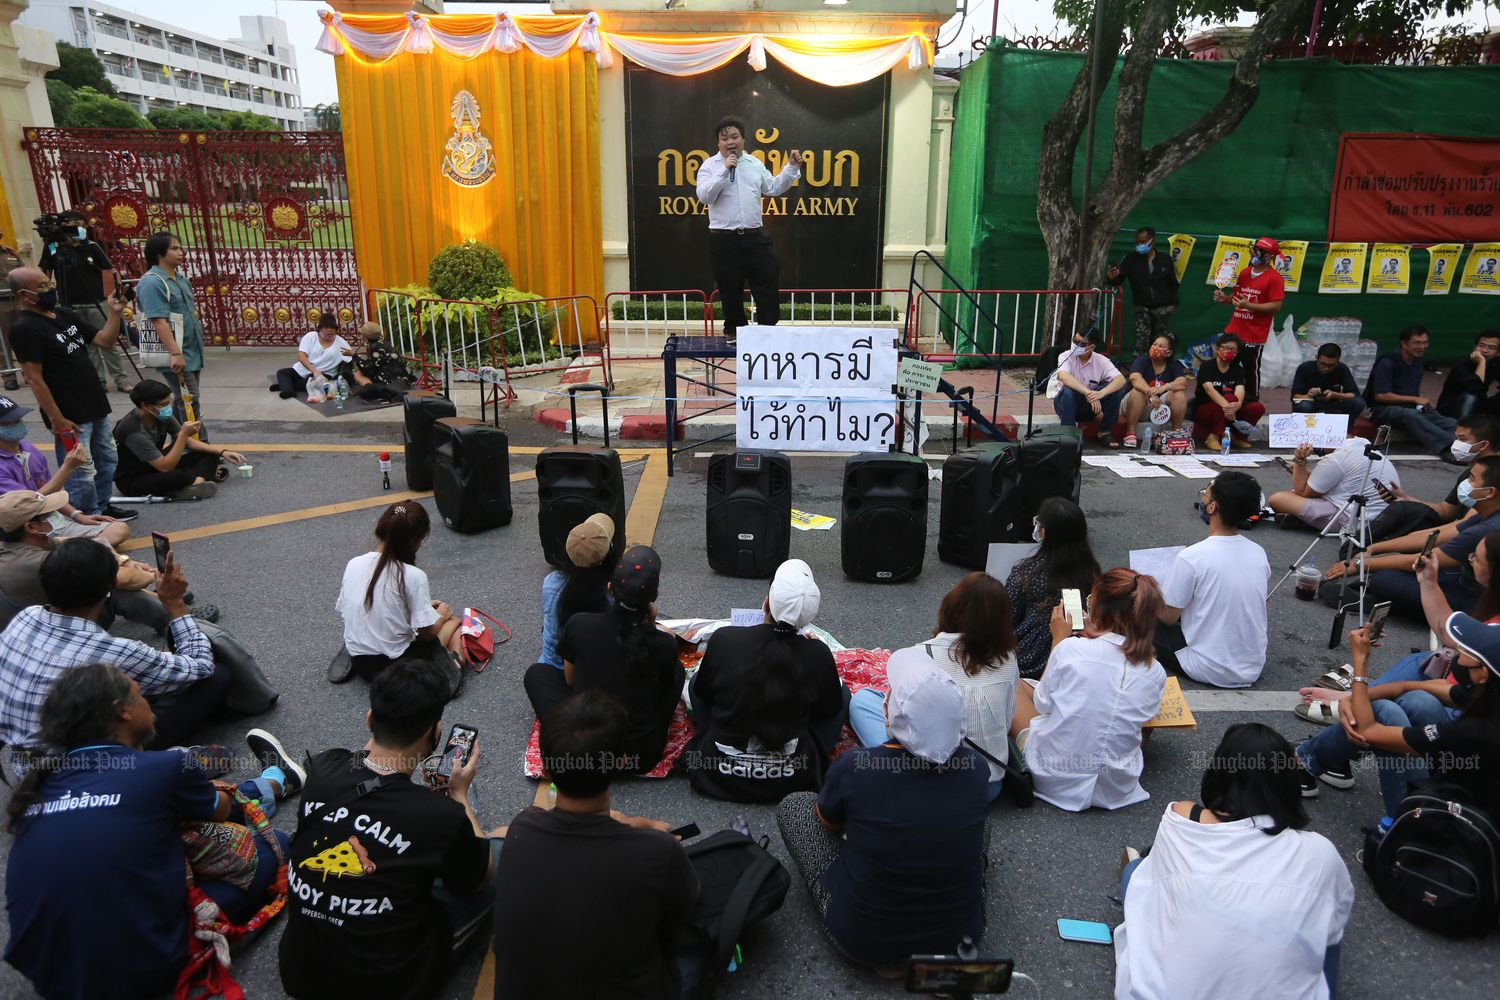 A group of students gather in front of the army headquarters in Bangkok on Monday. (Photo by Wichan Charoenkiatpakul)